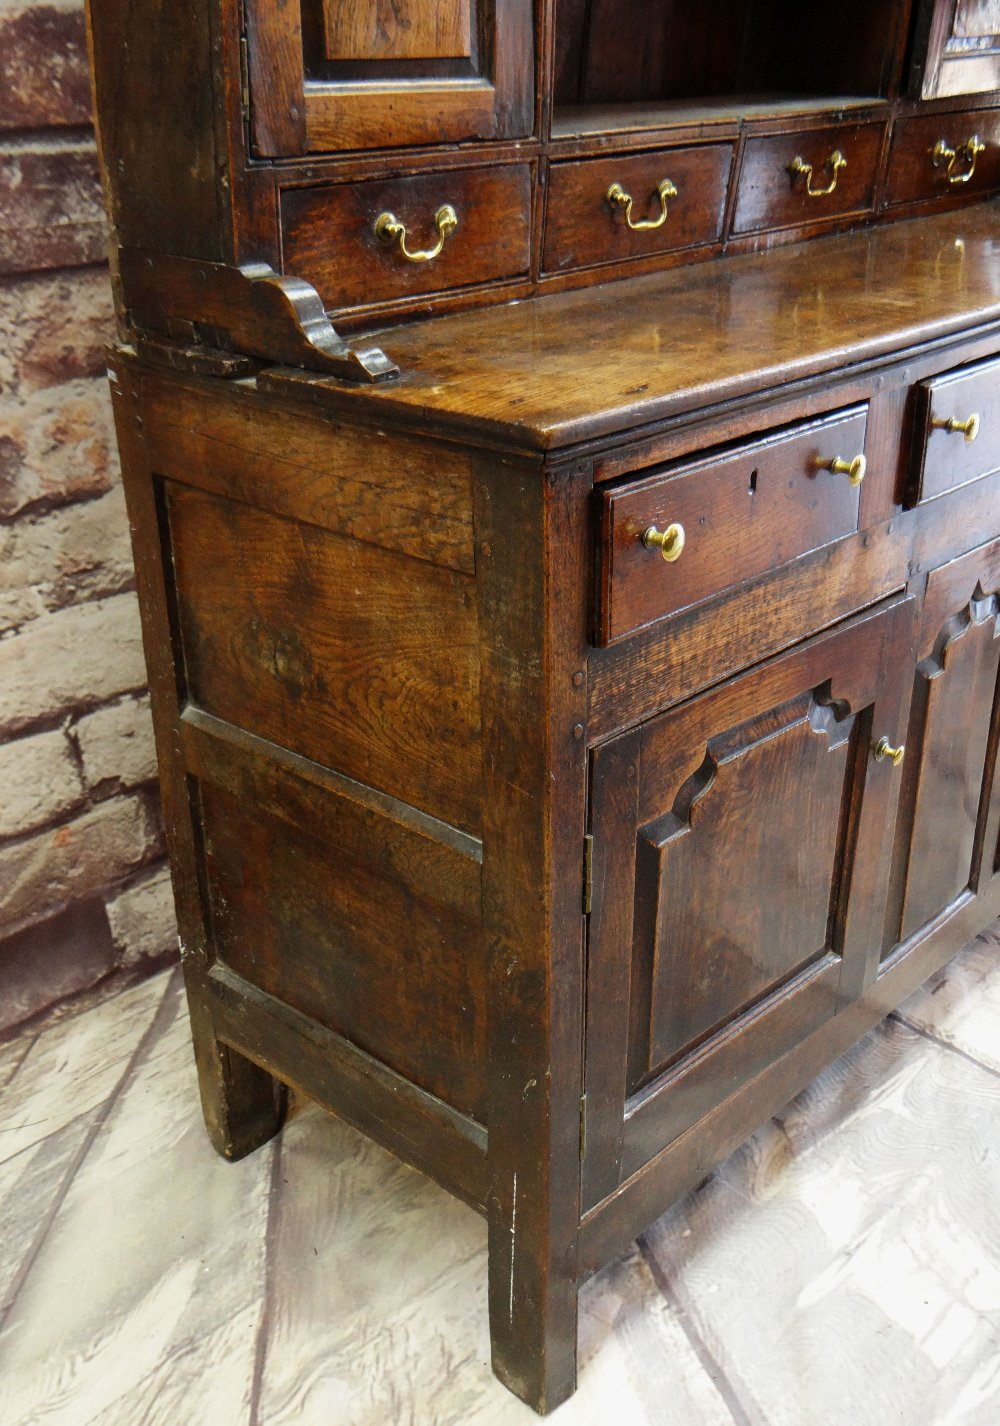 A SMALL CHARACTERFUL OAK NORTH WALES CUPBOARD-BASE WELSH DRESSER circa 1770-1800 having a base of - Image 8 of 26